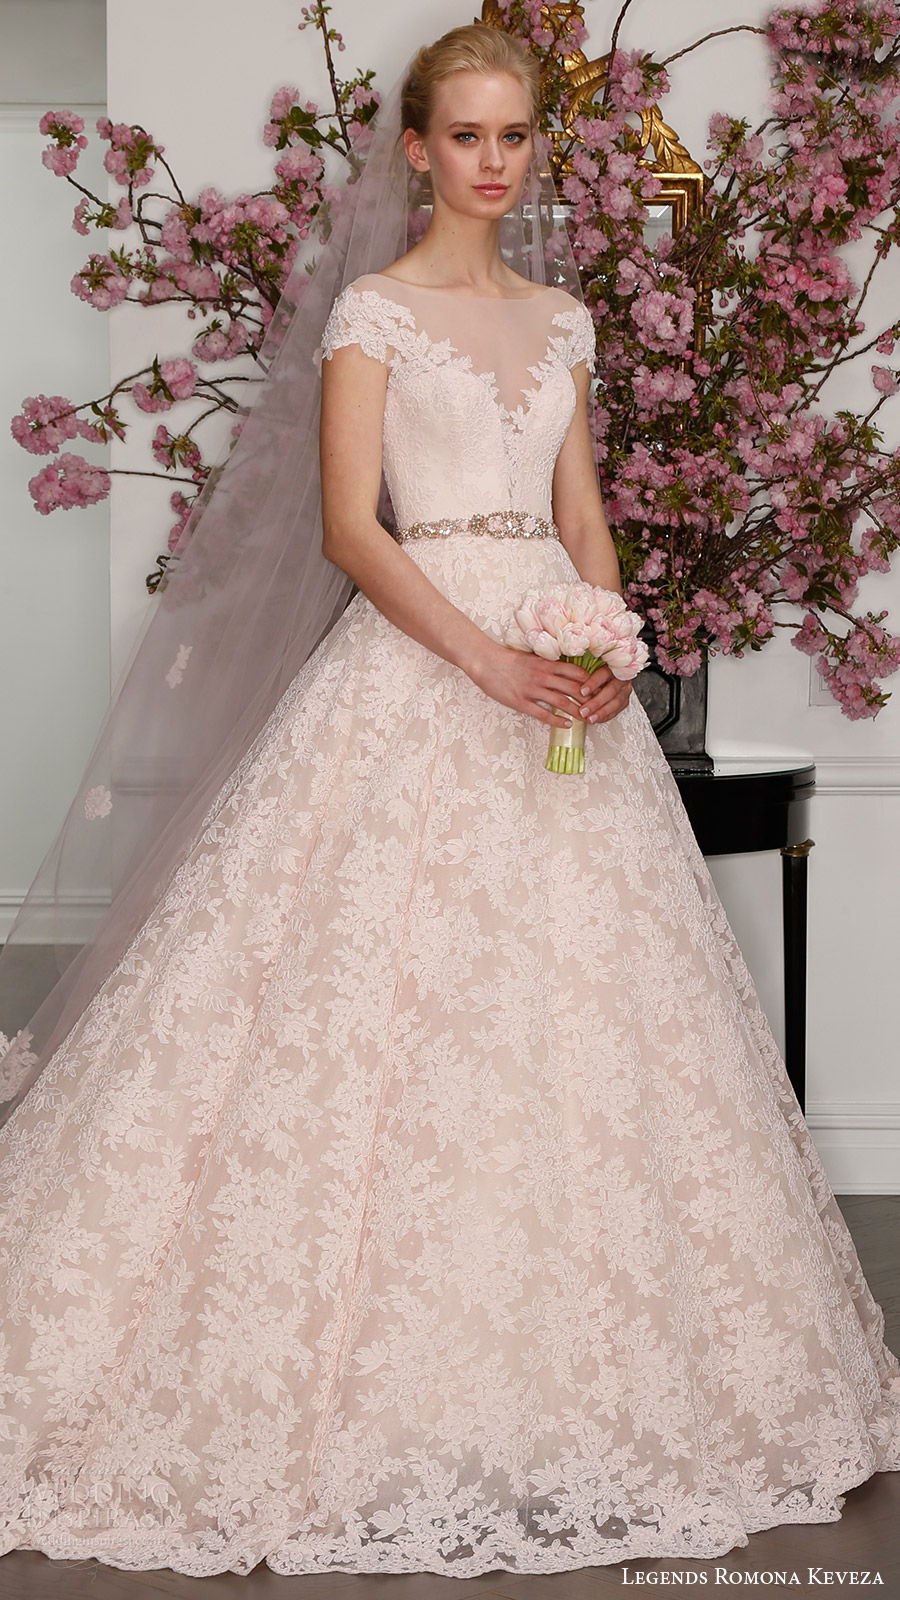 legends romona keveza bridal spring 2017 illusion off shoulder cap sleeves deep vneck lace ball gown (l7133) mv blush color